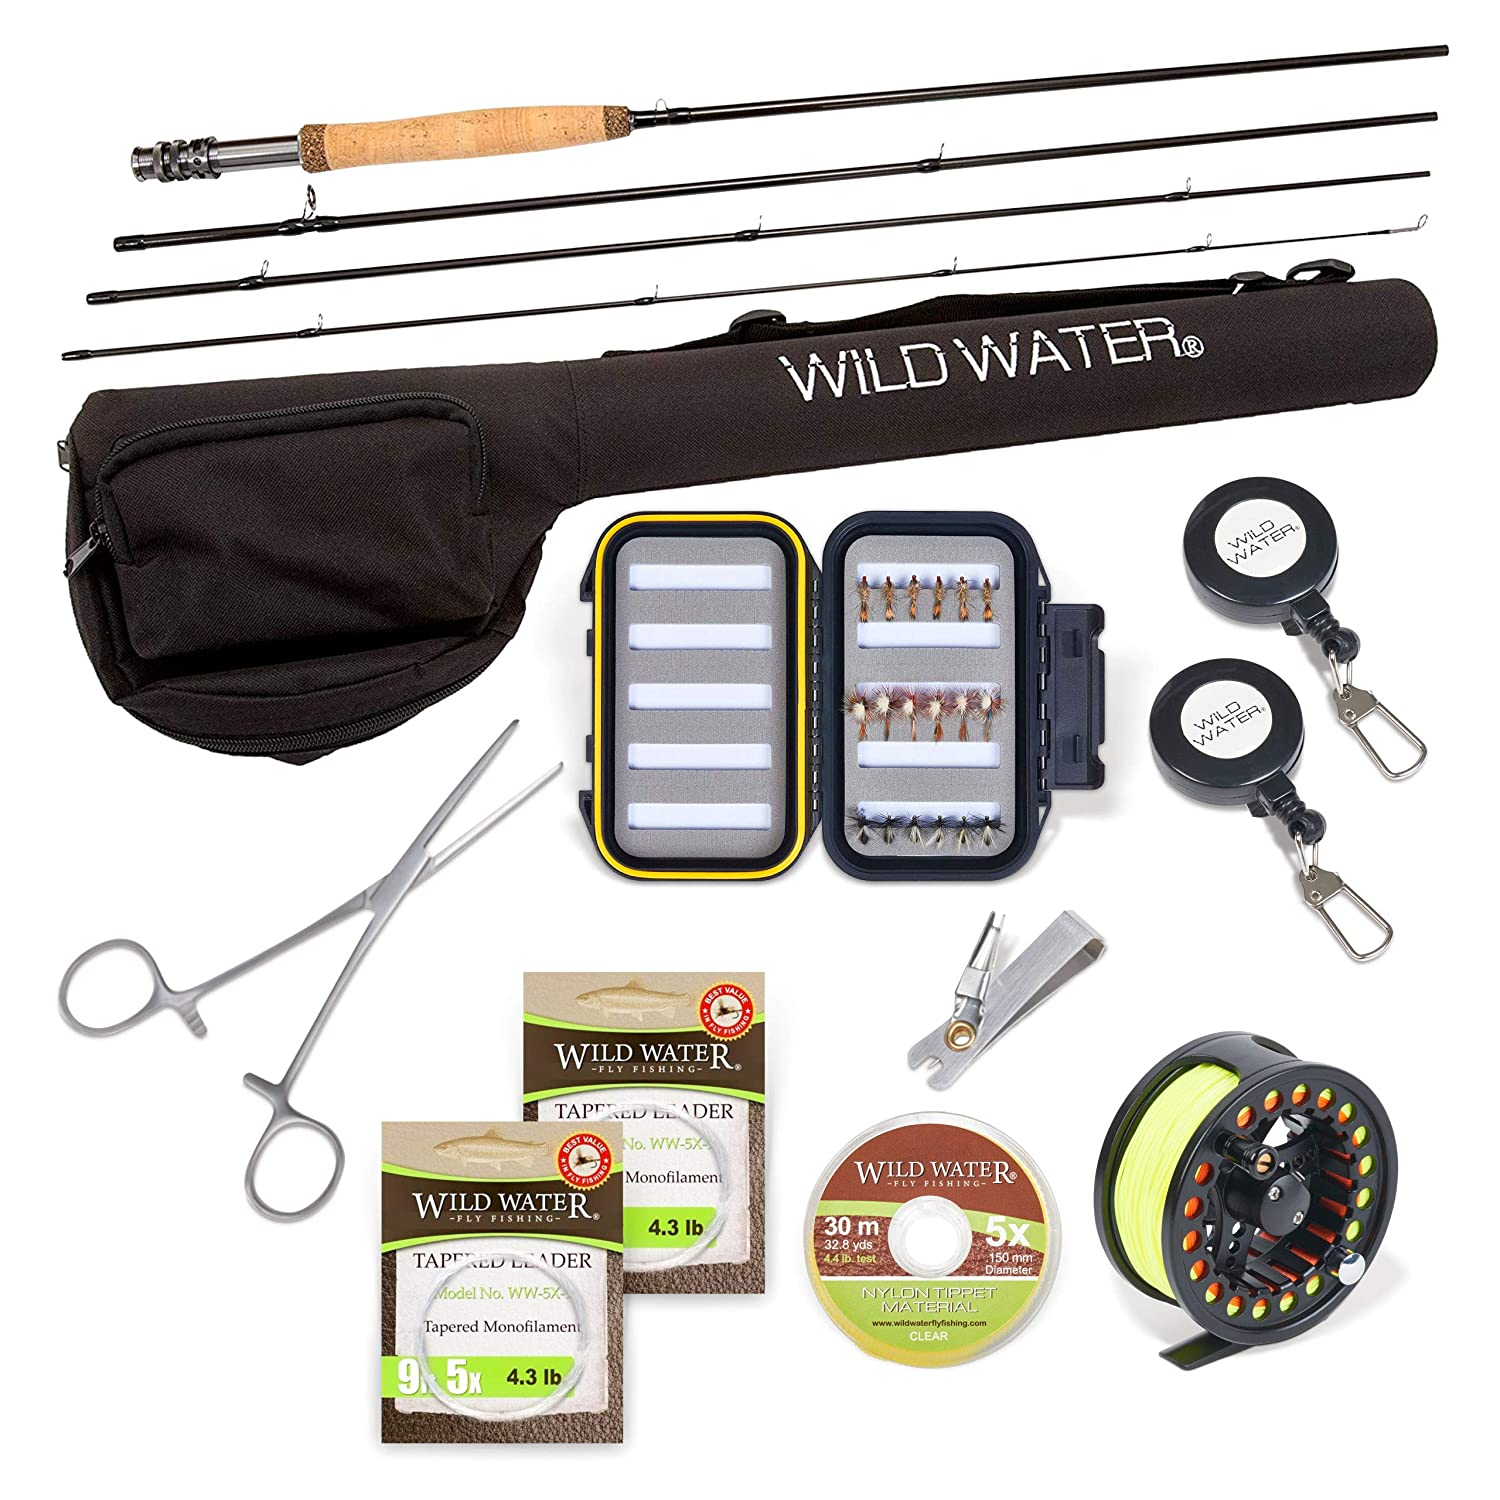 Wild Water Fly Fishing Rod and Reel Combo, Deluxe 4 Piece Fly Rod 5 6 9 Complete Starter Package